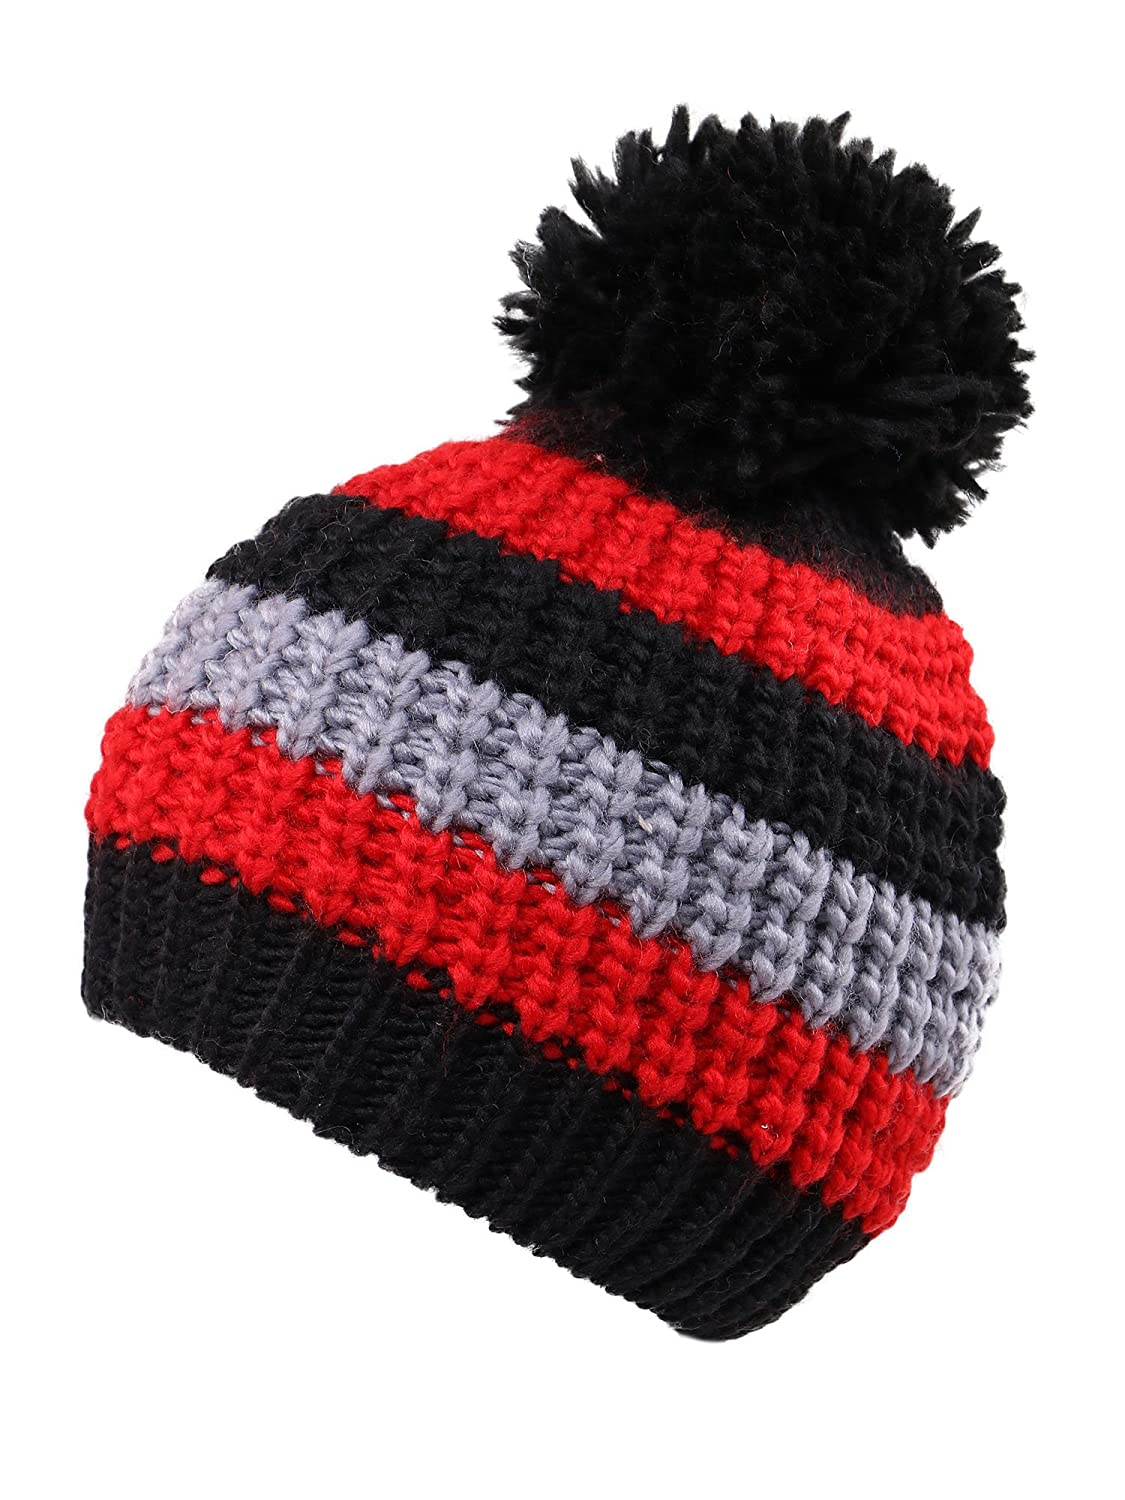 ARCTIC Paw Boys/Girls Kids Knit Beanie w/Pompom Toddlers Children Winter Hat Cap Black Striped